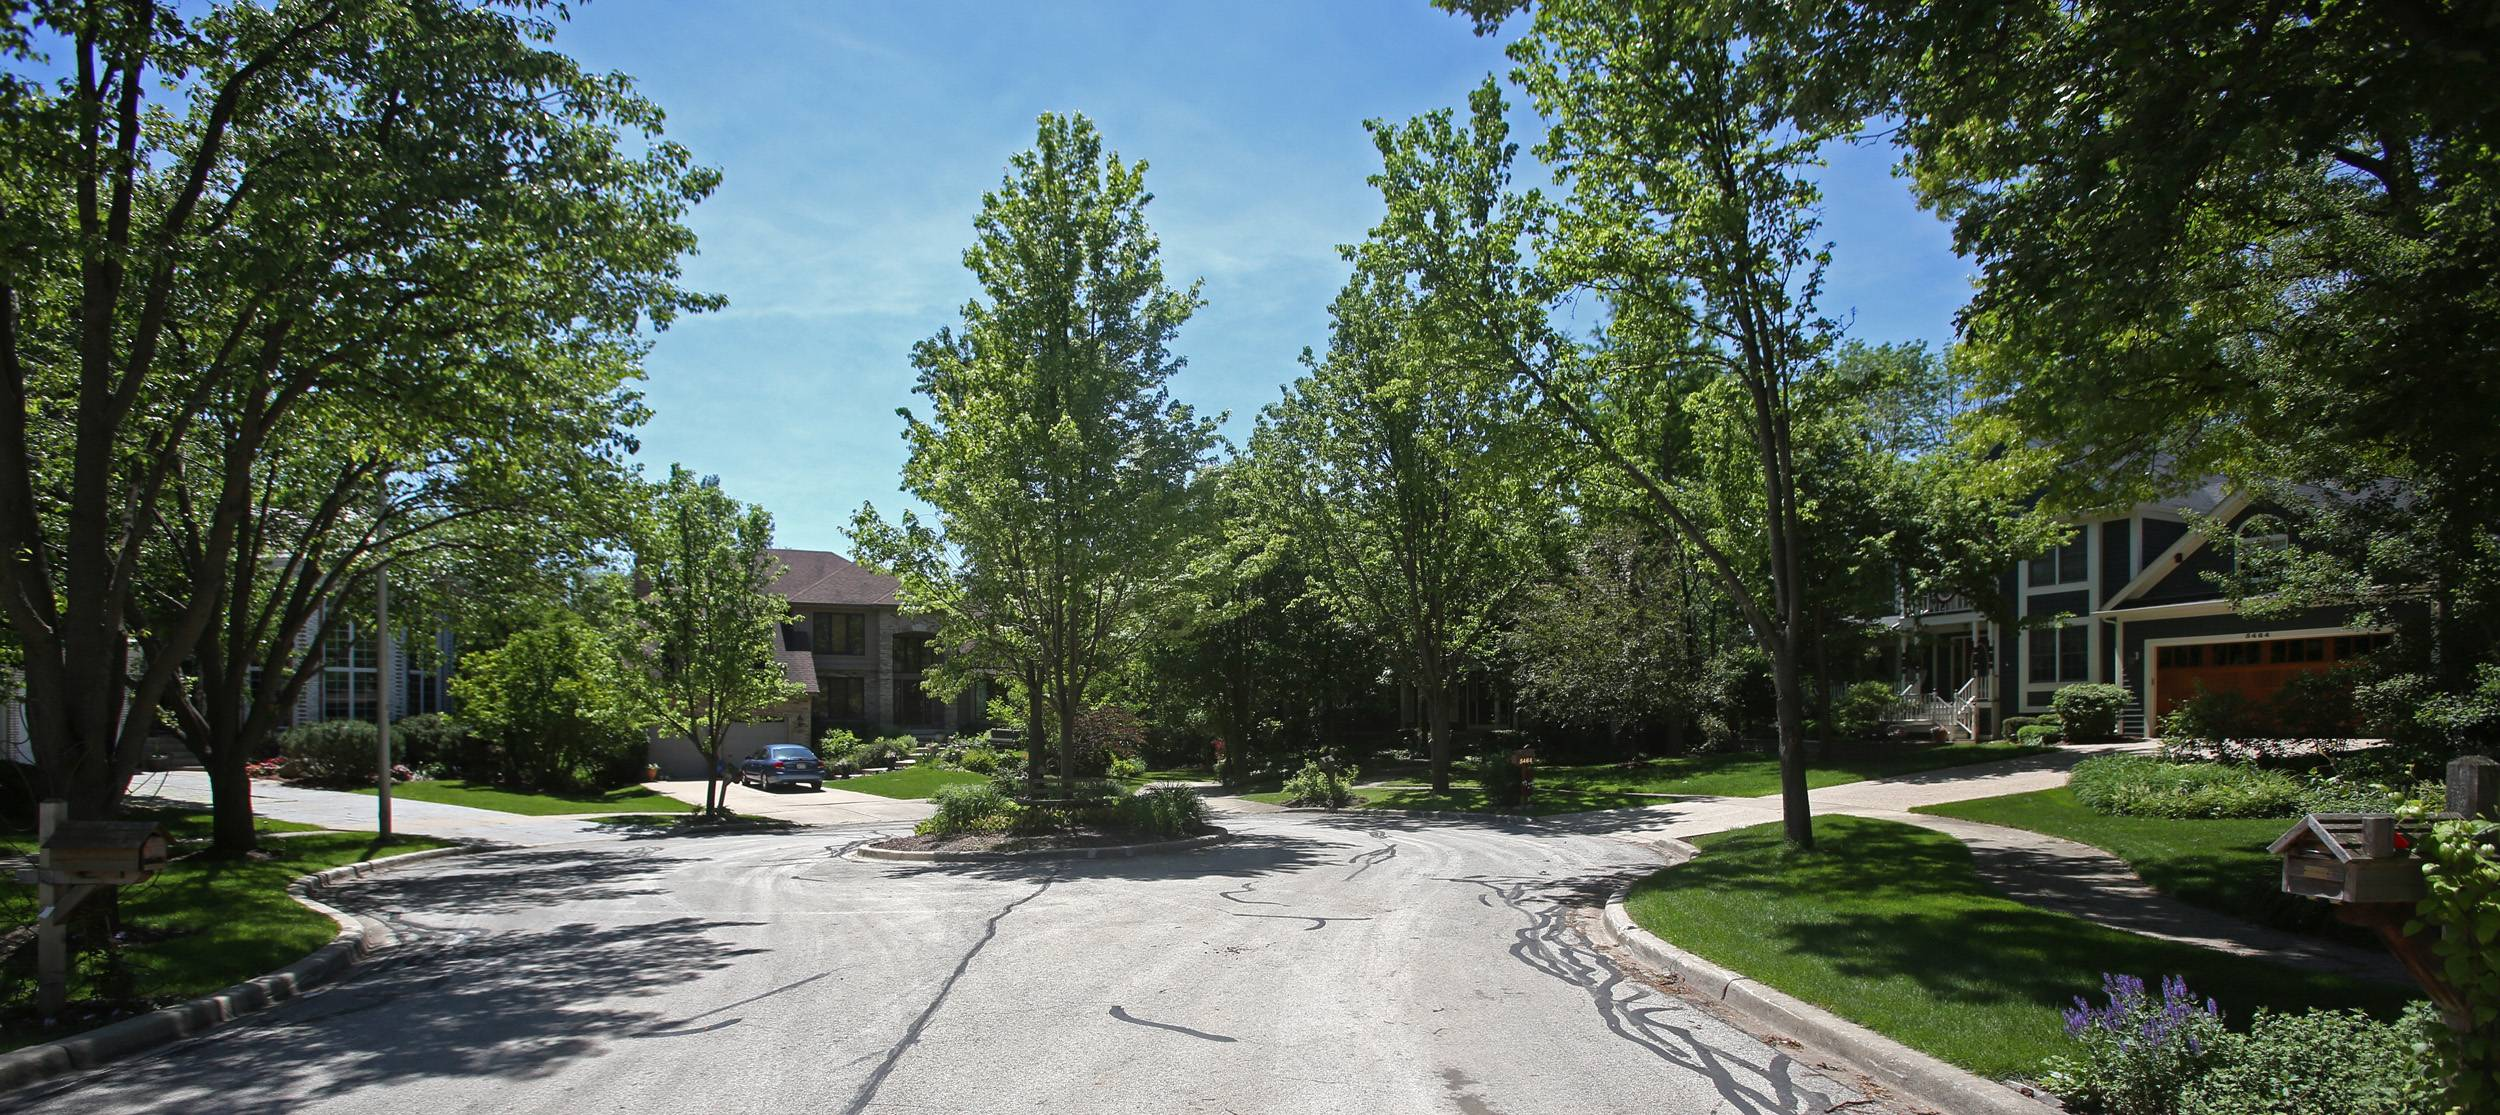 Bending Oaks in Downers Grove is full of mature trees and large lots that give the neighborhood a secluded atmosphere.